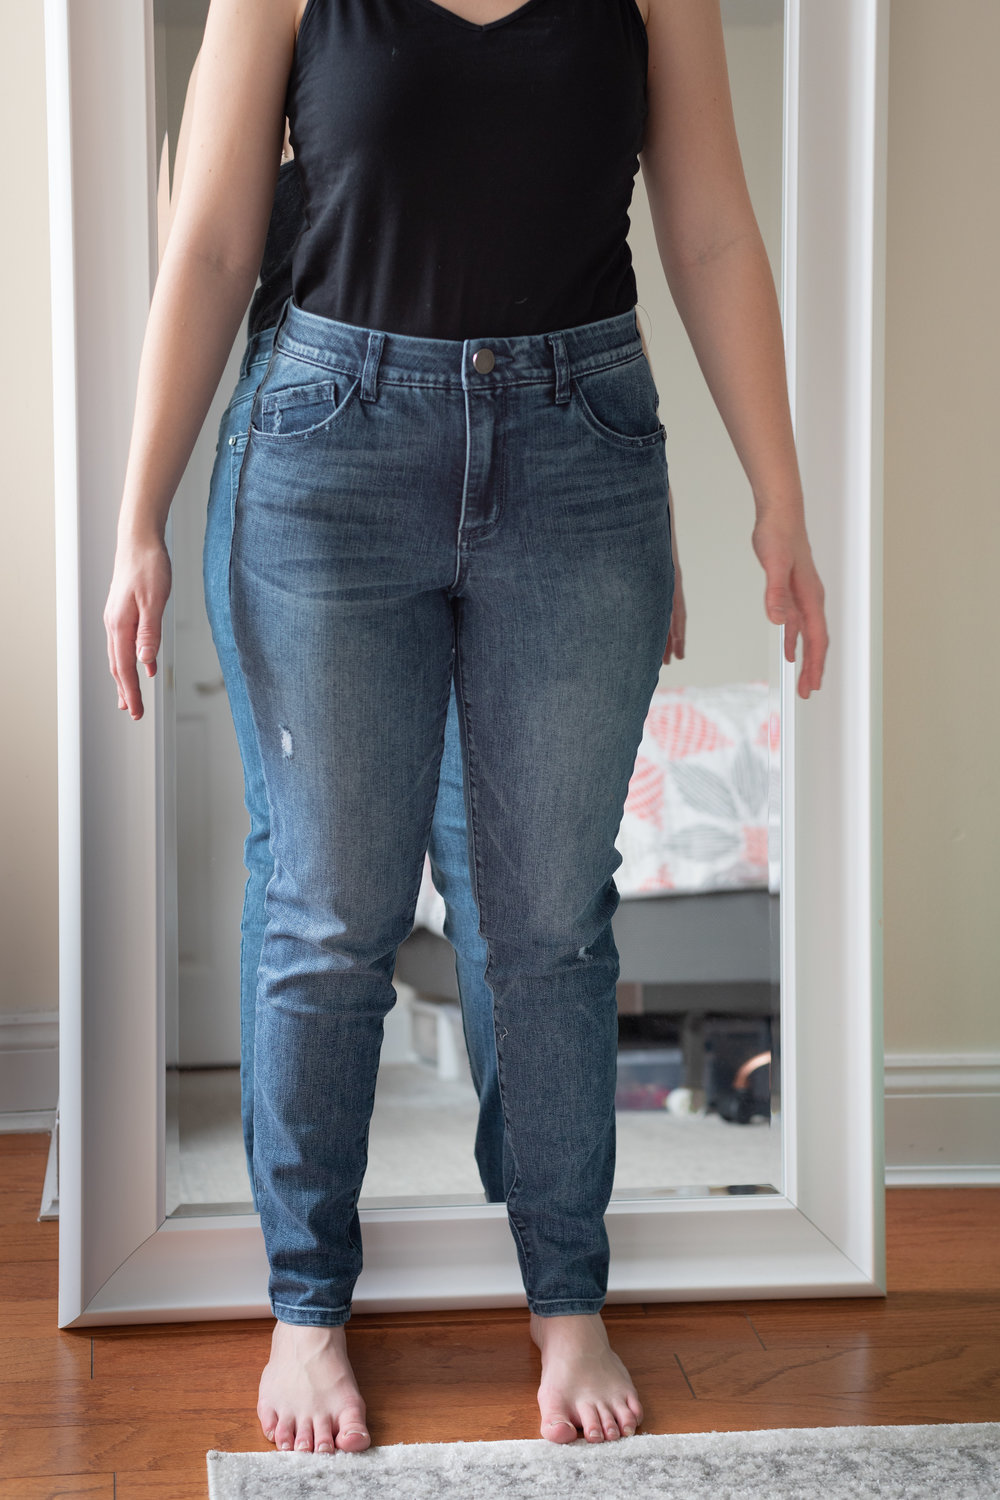 Wit & Wisdom Ab-Solution High Waist Skinny Jeans - Size 6 Petite